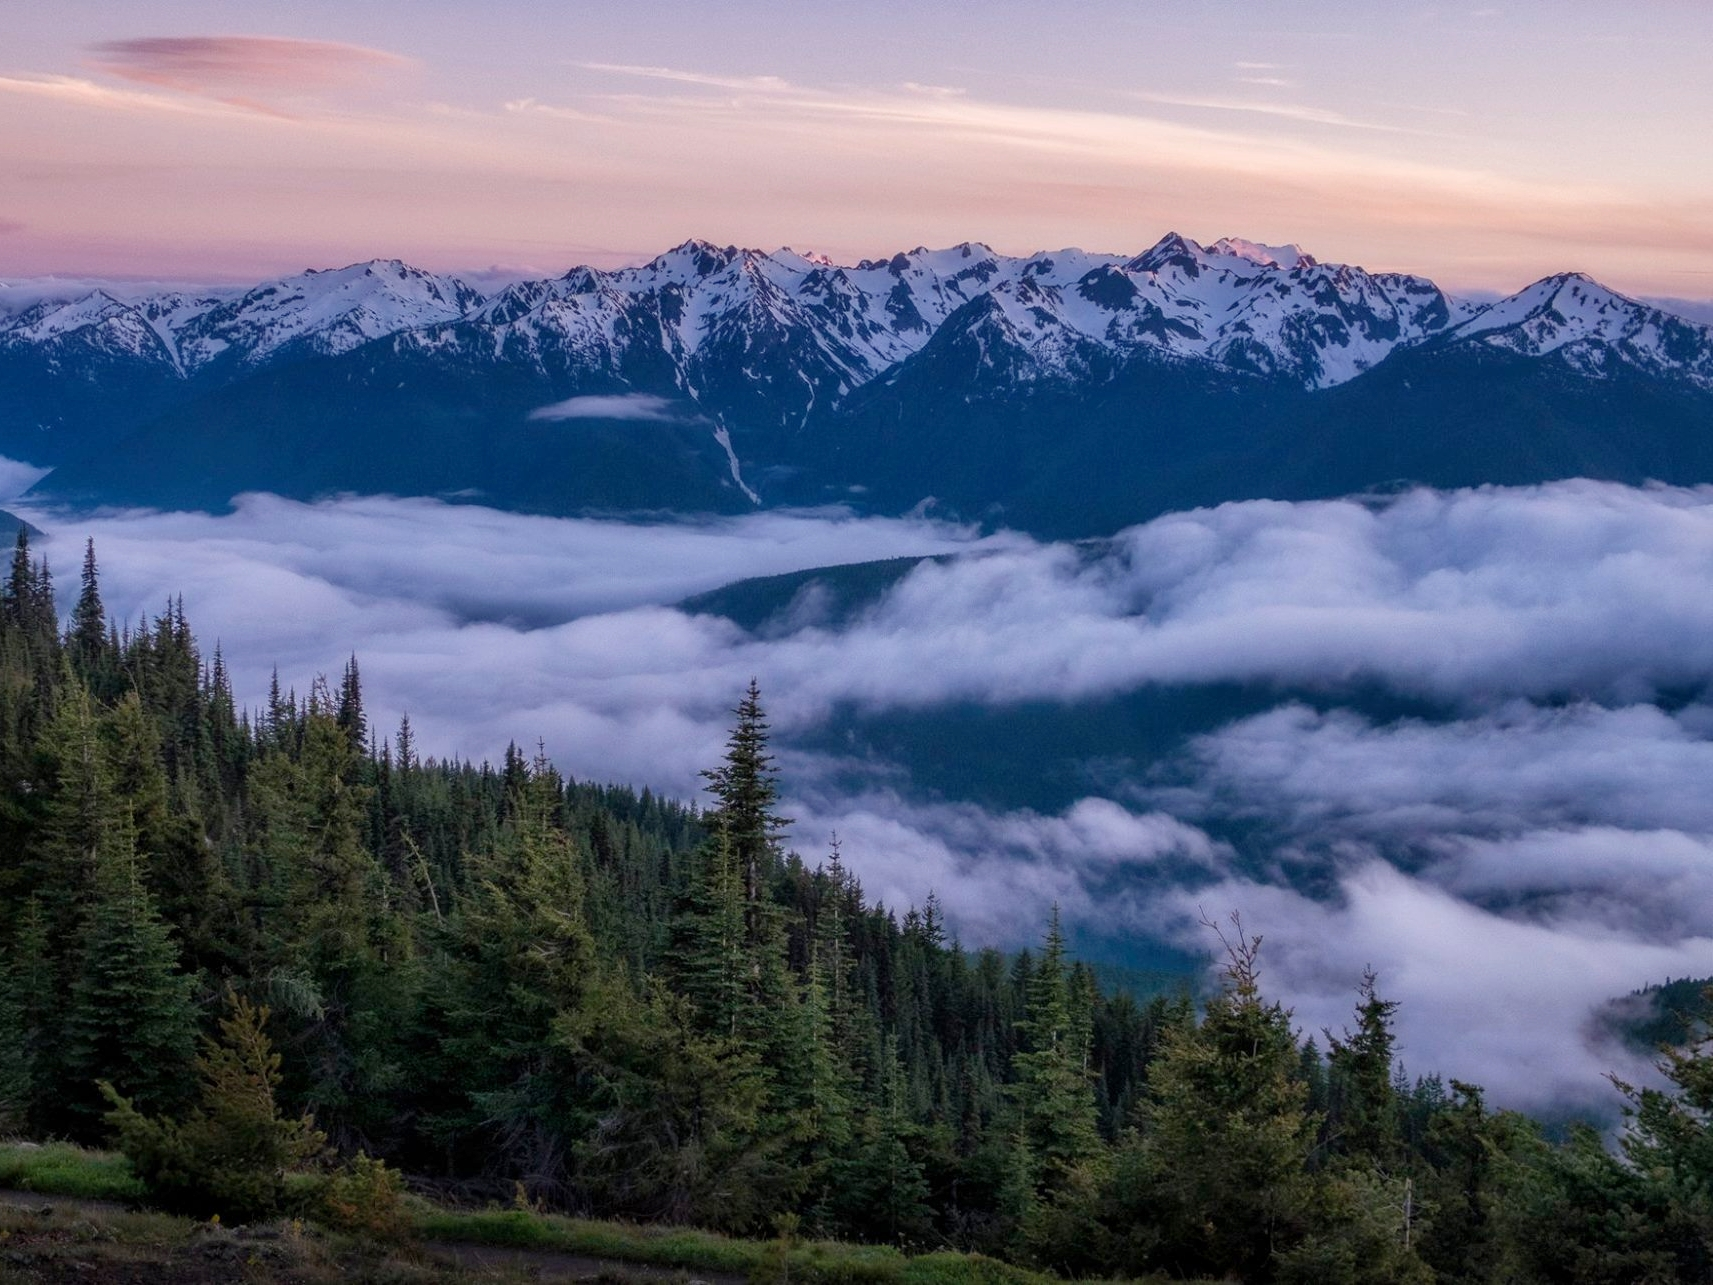 The mountains of the Olympic Peninsula